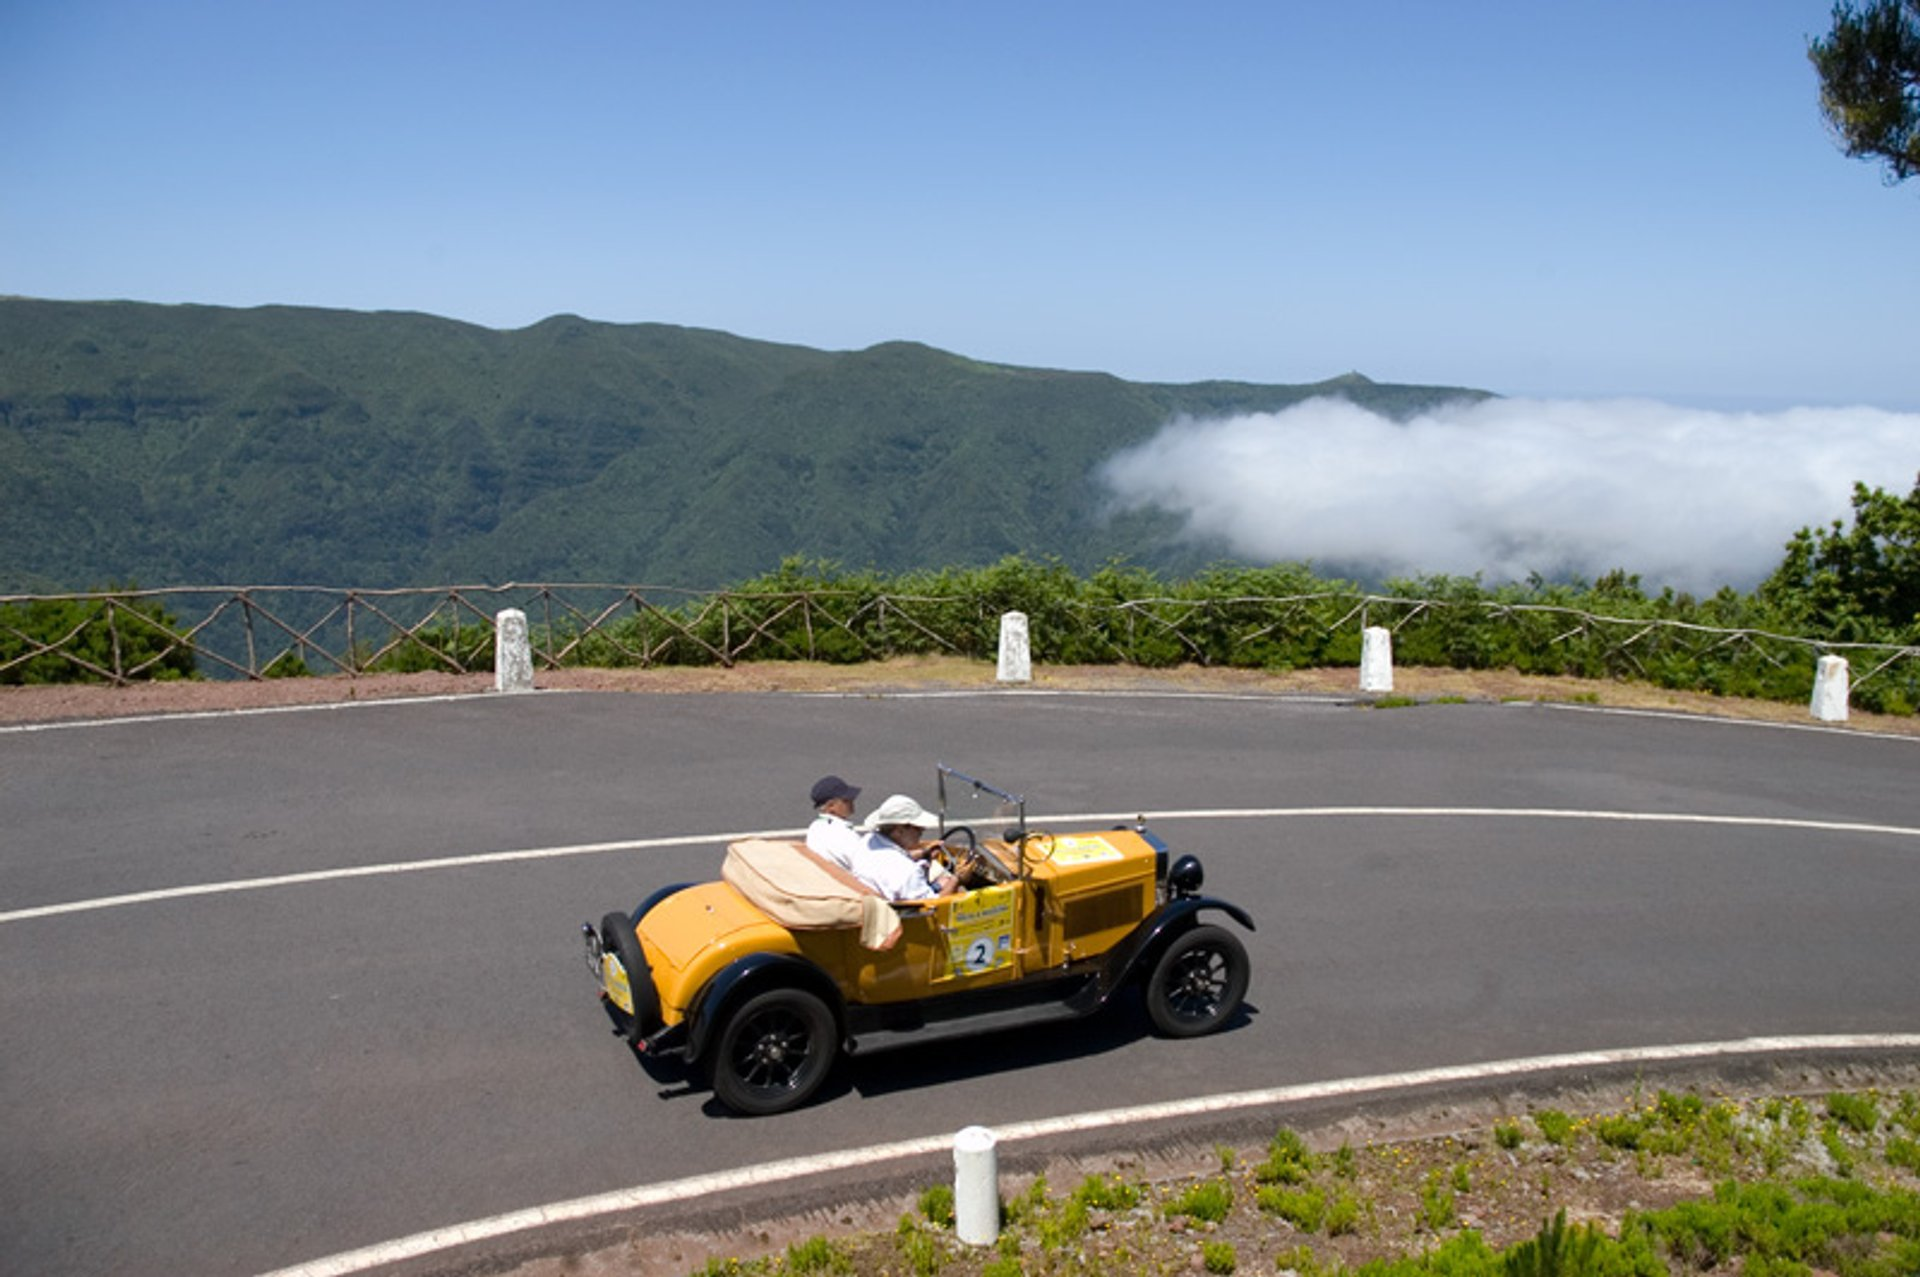 Volta a Madeira in Madeira - Best Season 2019